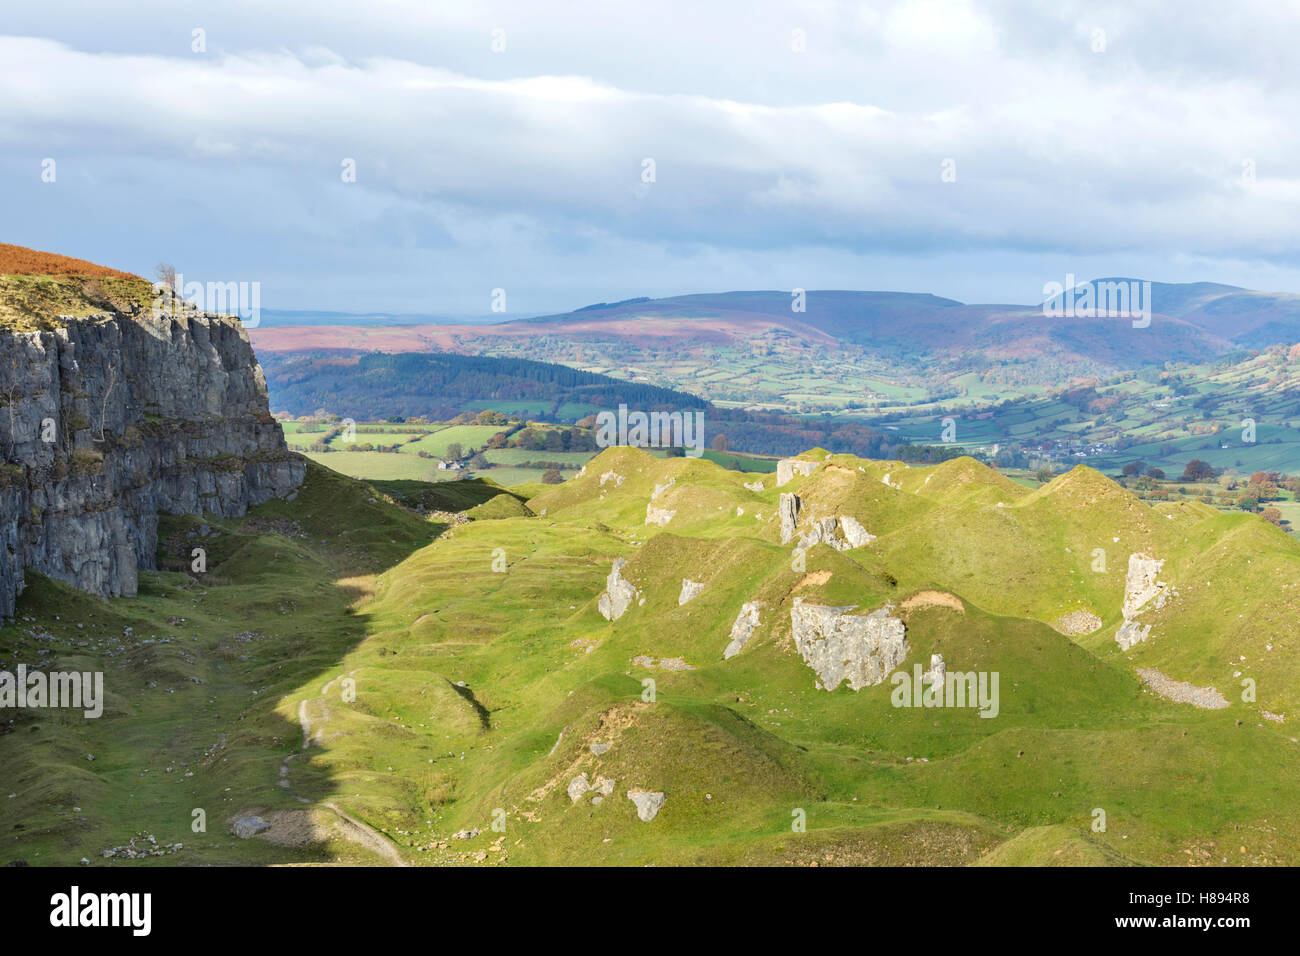 Llangatwg disused quarries and the distant Cafn Moel mountain near Llangattock, Brecon Beacons National Park, Wales, - Stock Image